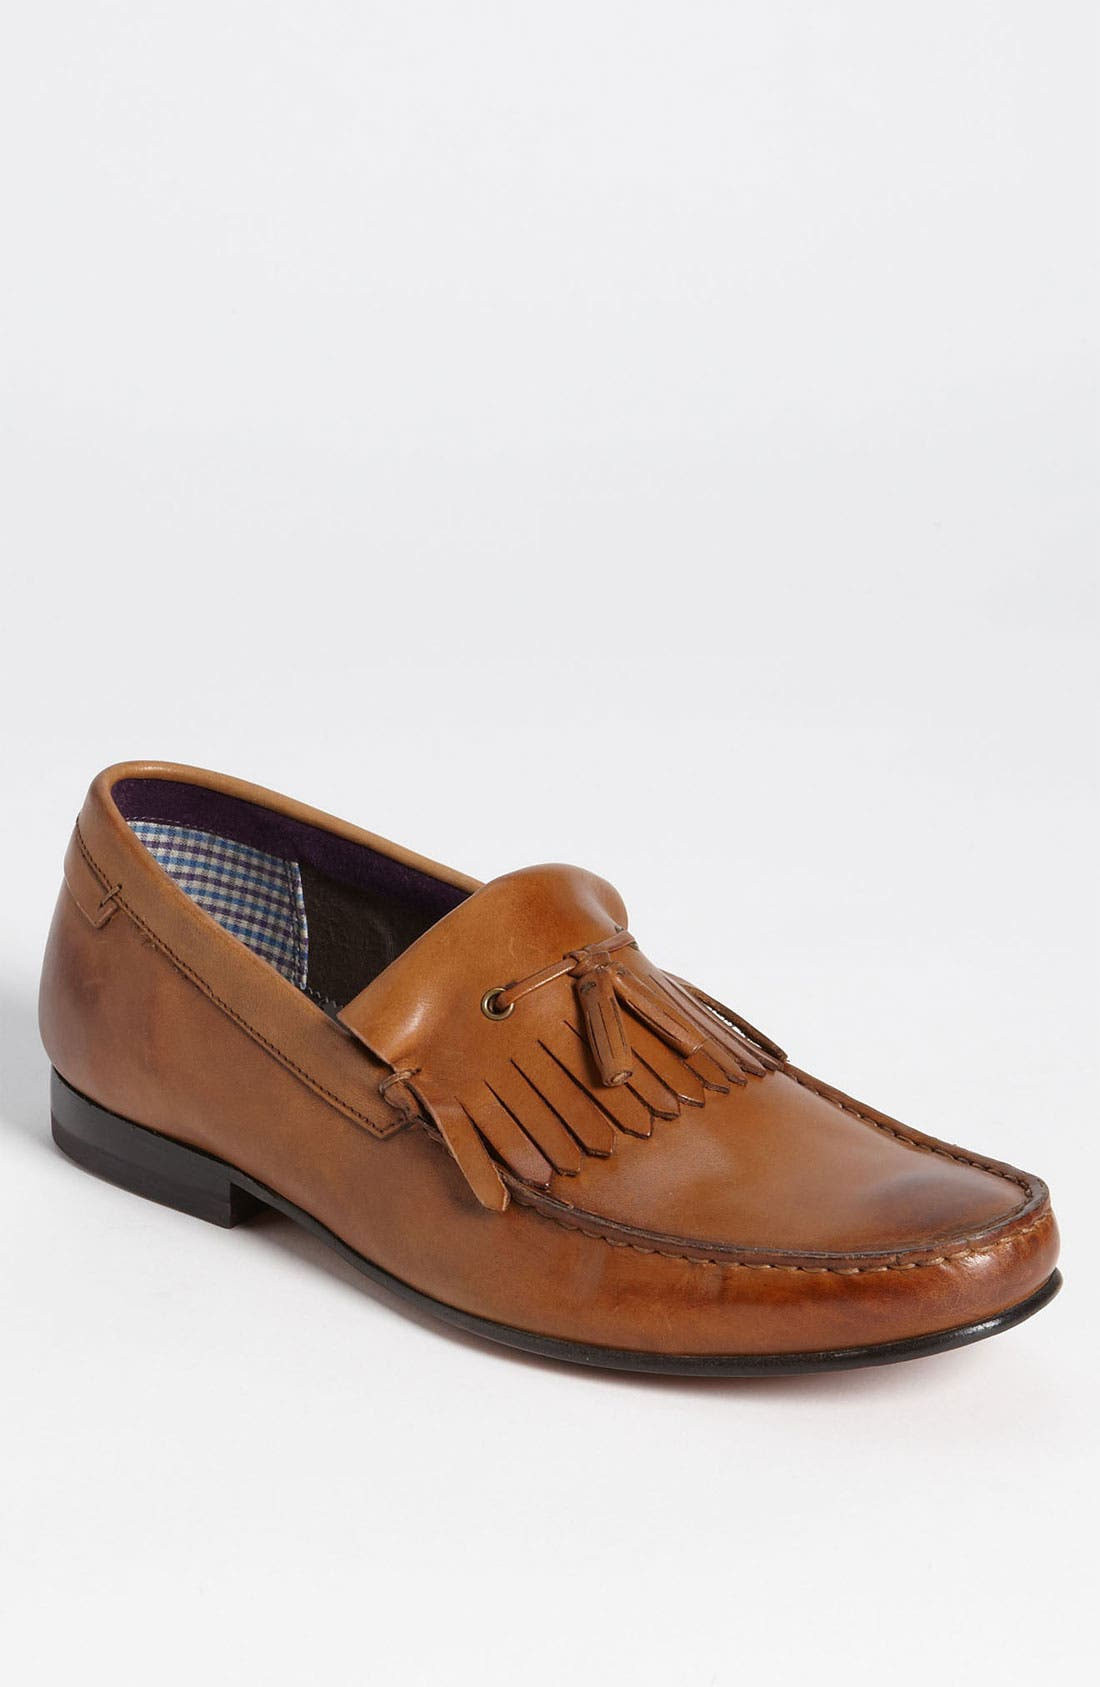 Alternate Image 1 Selected - Ted Baker London 'Tephra 3' Kiltie Loafer